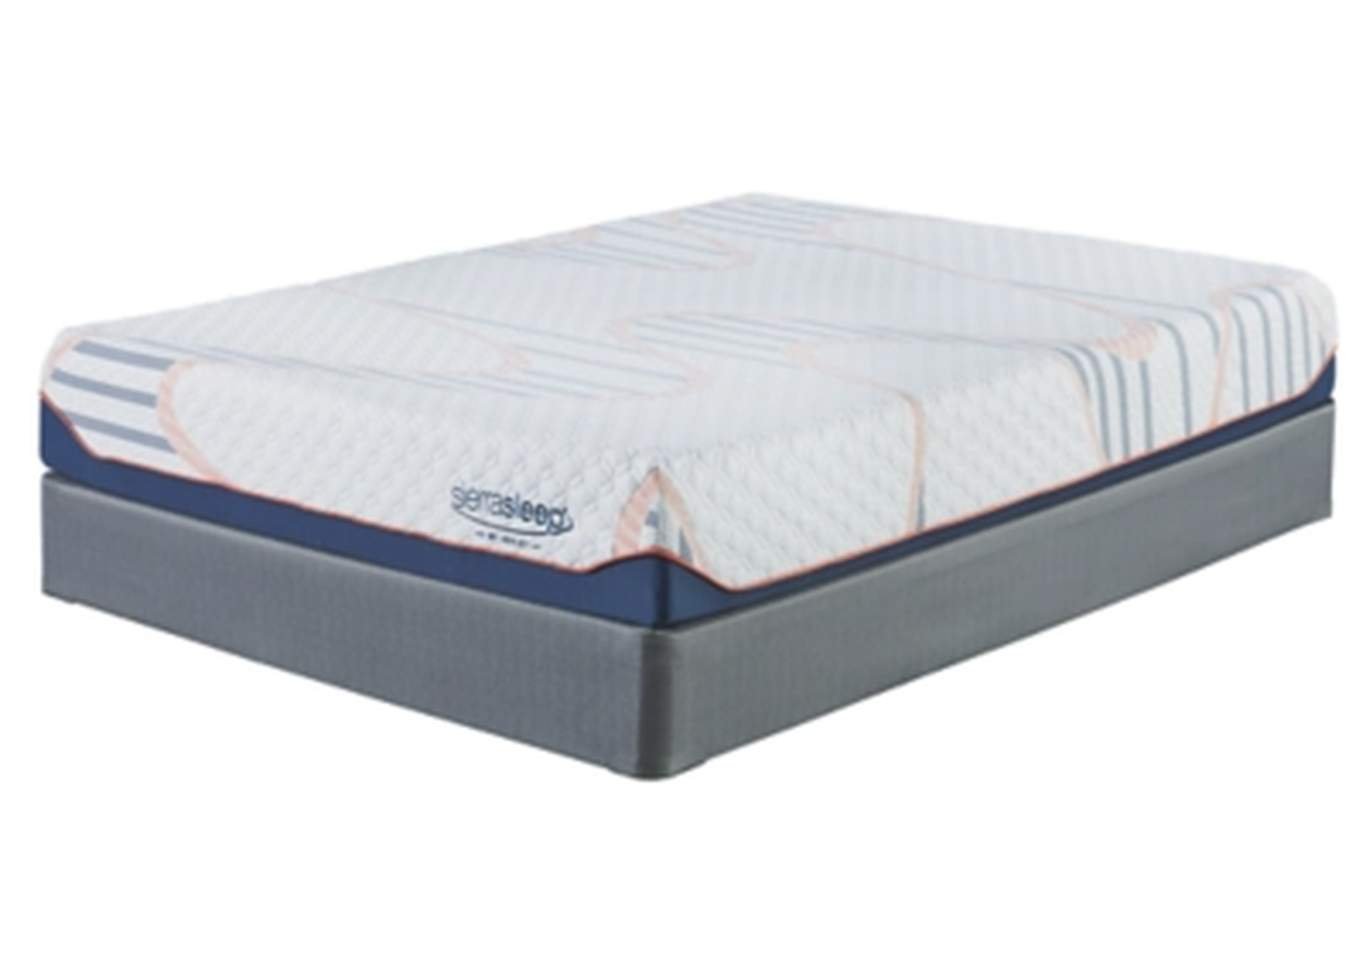 10 Inch MyGel Twin Mattress,Sierra Sleep by Ashley